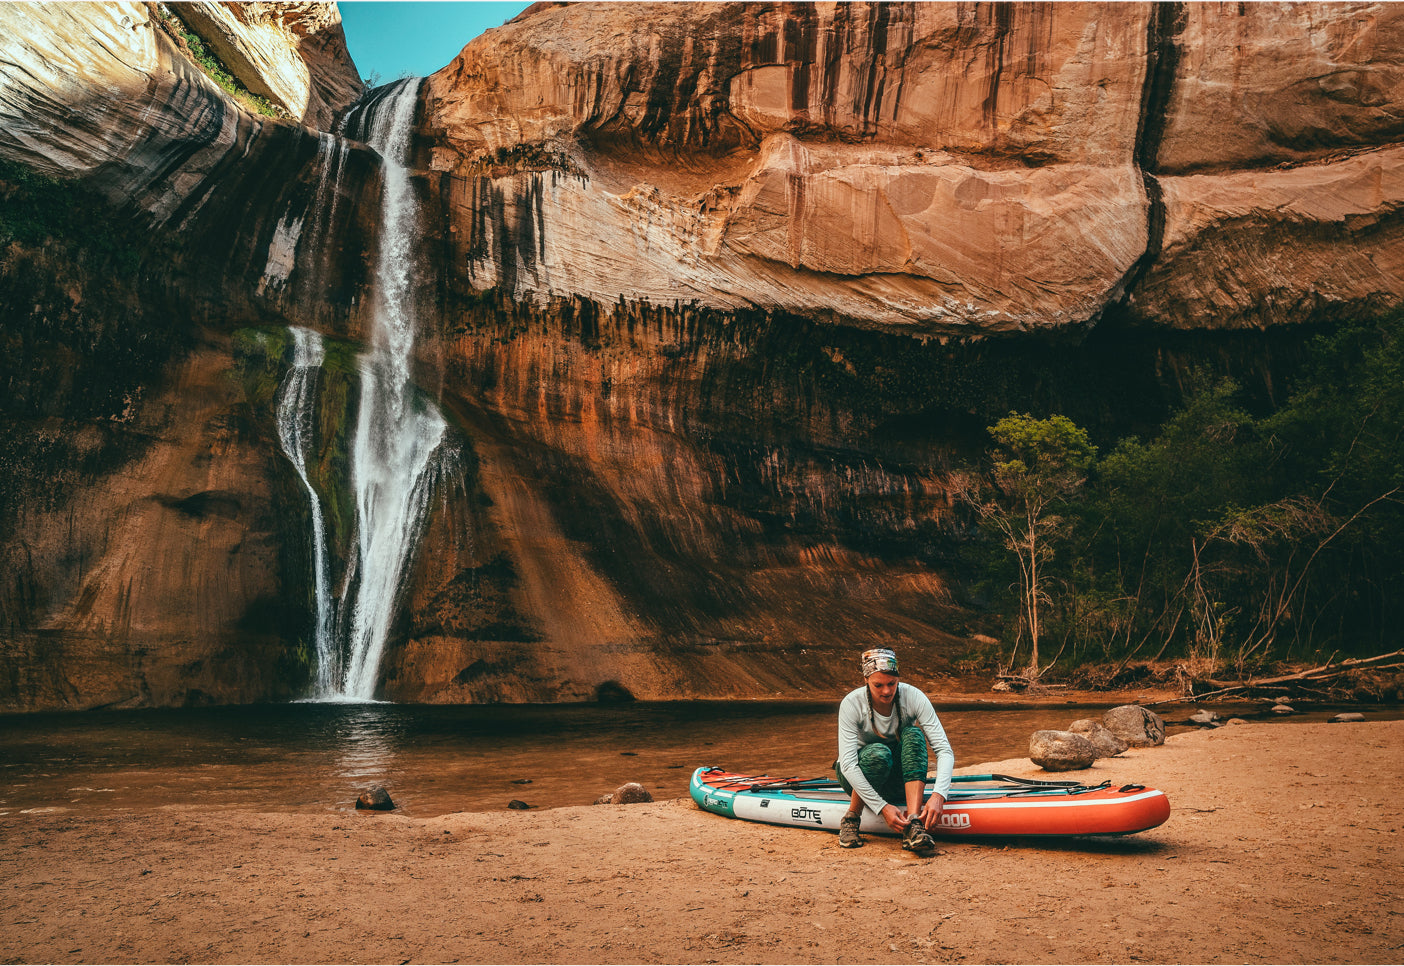 Hidden waterfall of Antelope Canyon, Arizona. Flood Aero inflatable paddle board.